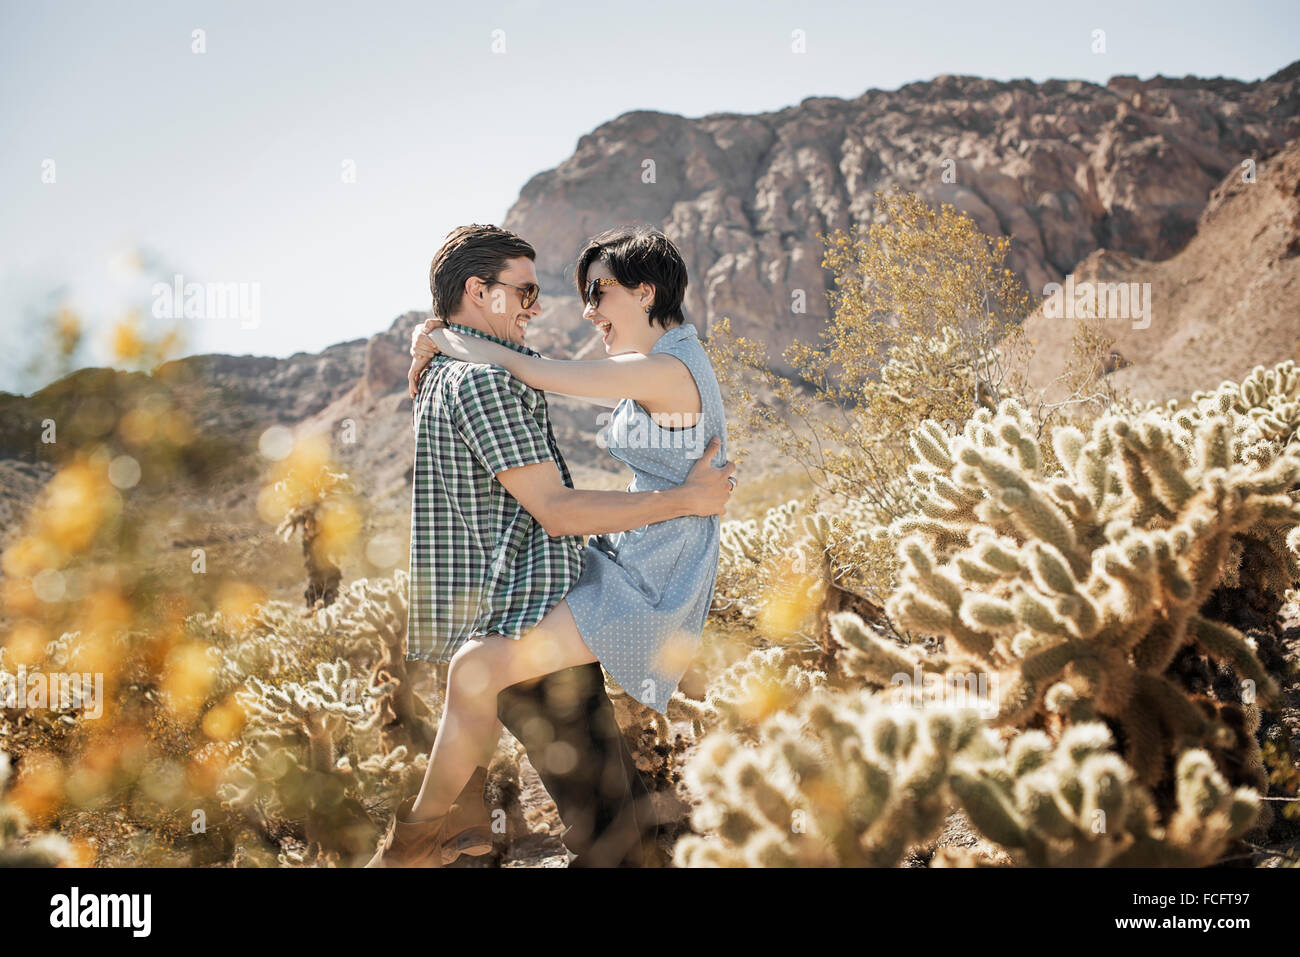 A young couple, man and woman in a desert landscape. - Stock Image